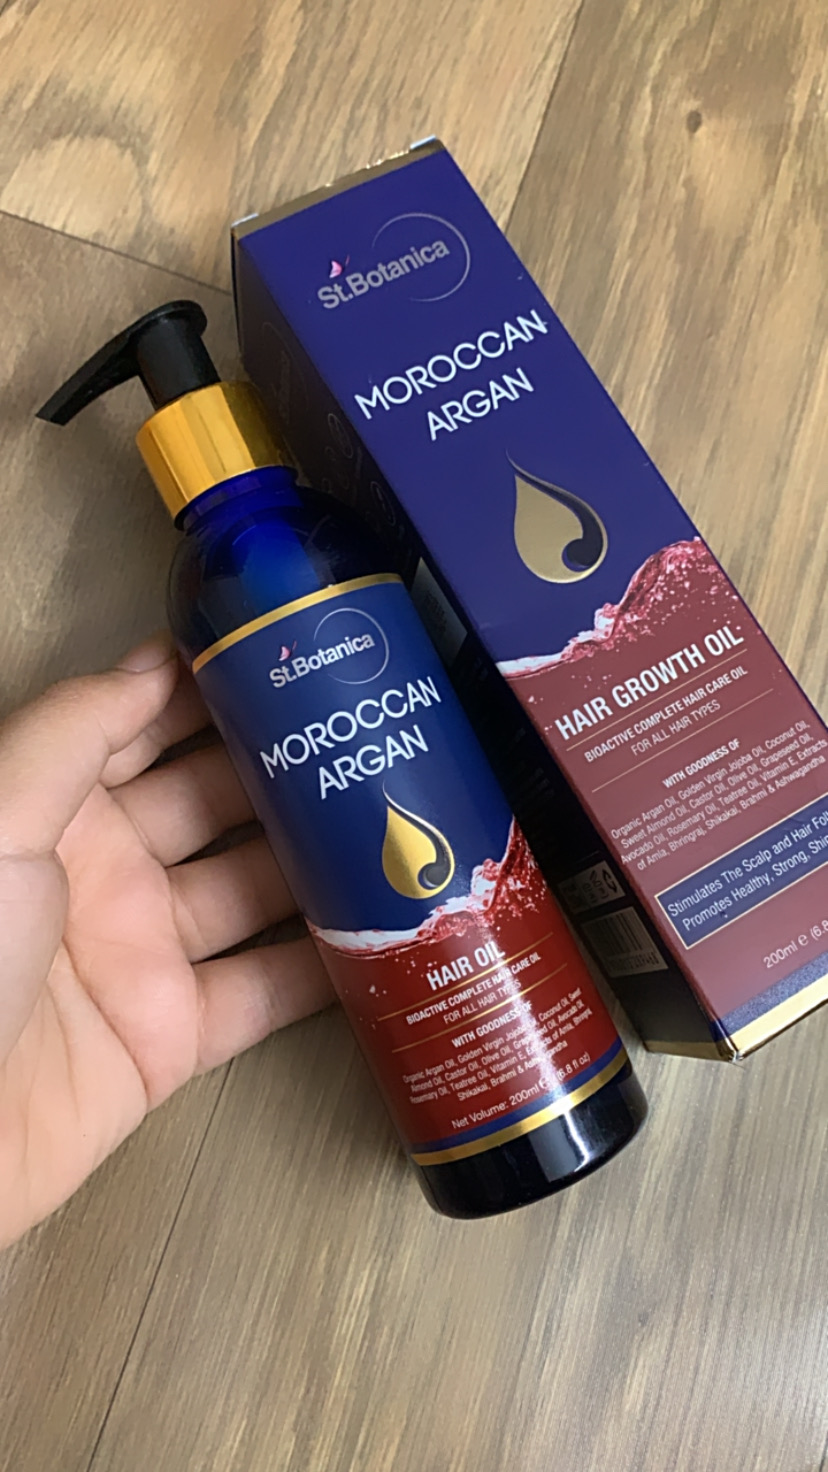 St.Botanica Moroccan Argan Hair Growth Oil -Strongly recommend-By priyaamakhija